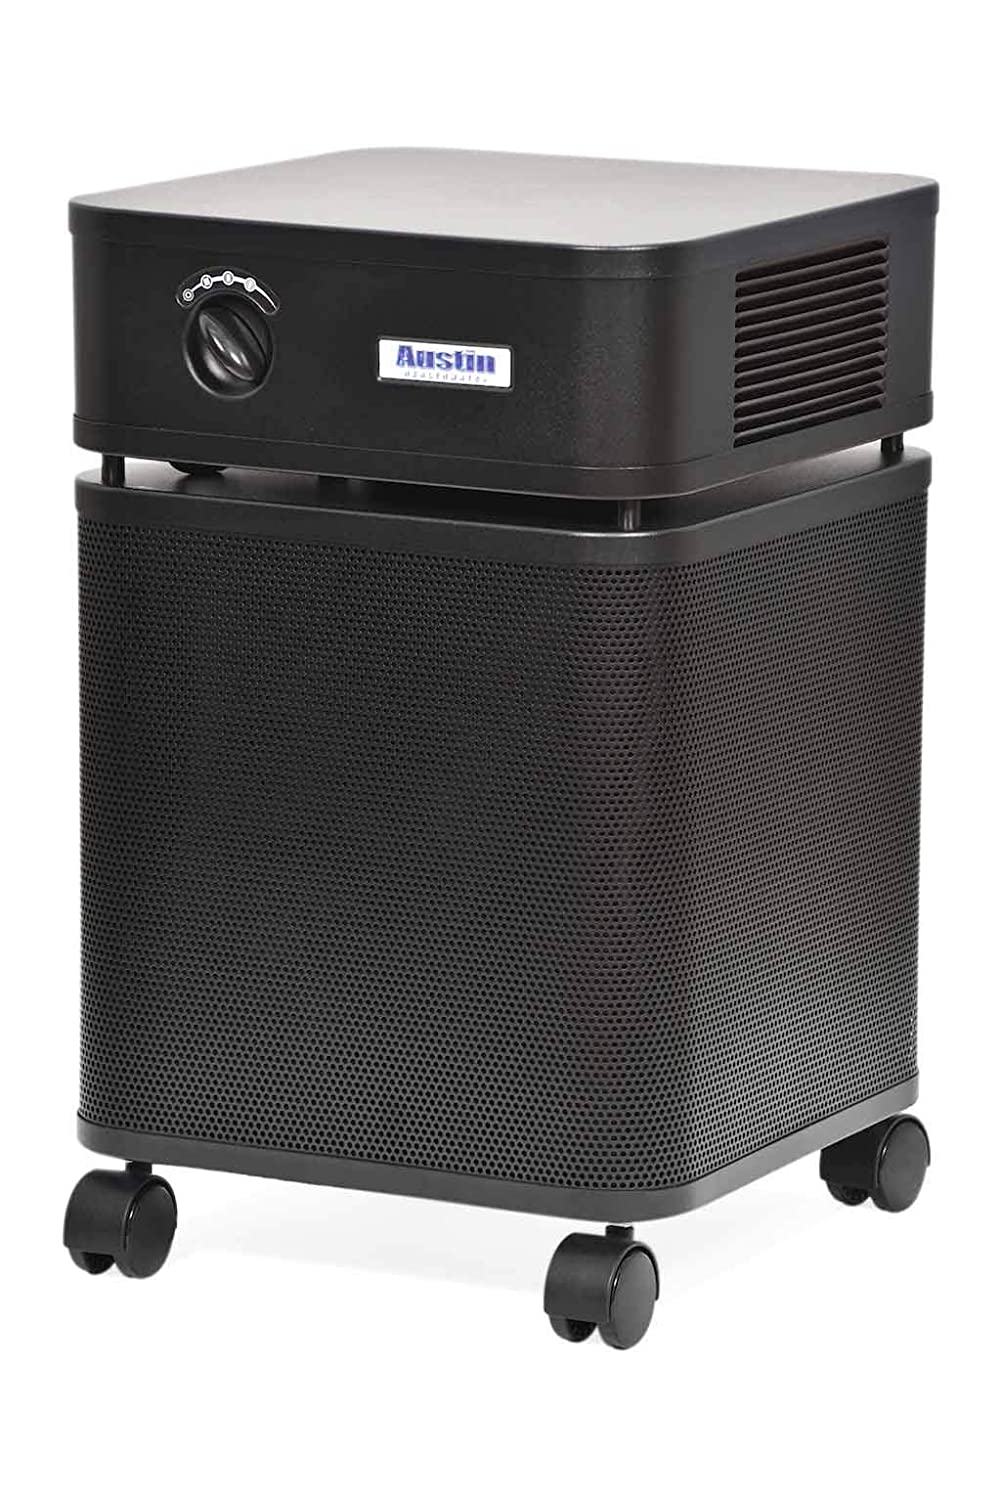 Austin Air Purifier Healthmate Plus With Superblend Filter ...